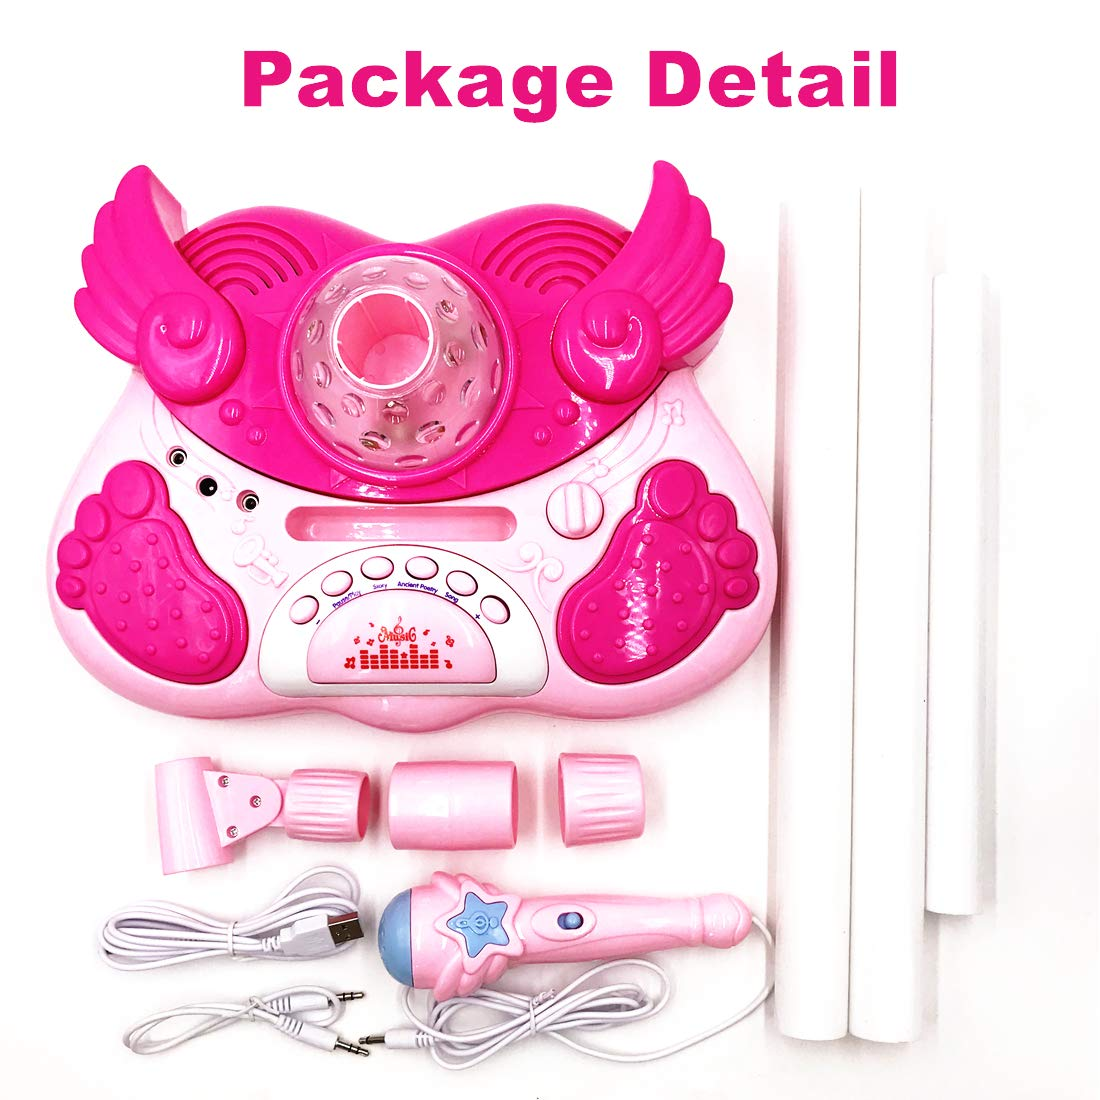 Kidsonor Kids Karaoke Machine with Microphones and Adjustable Stand, AUX Cable Connect to Electronic Devices for Music (Single Mic Pink) by Kidsonor (Image #7)